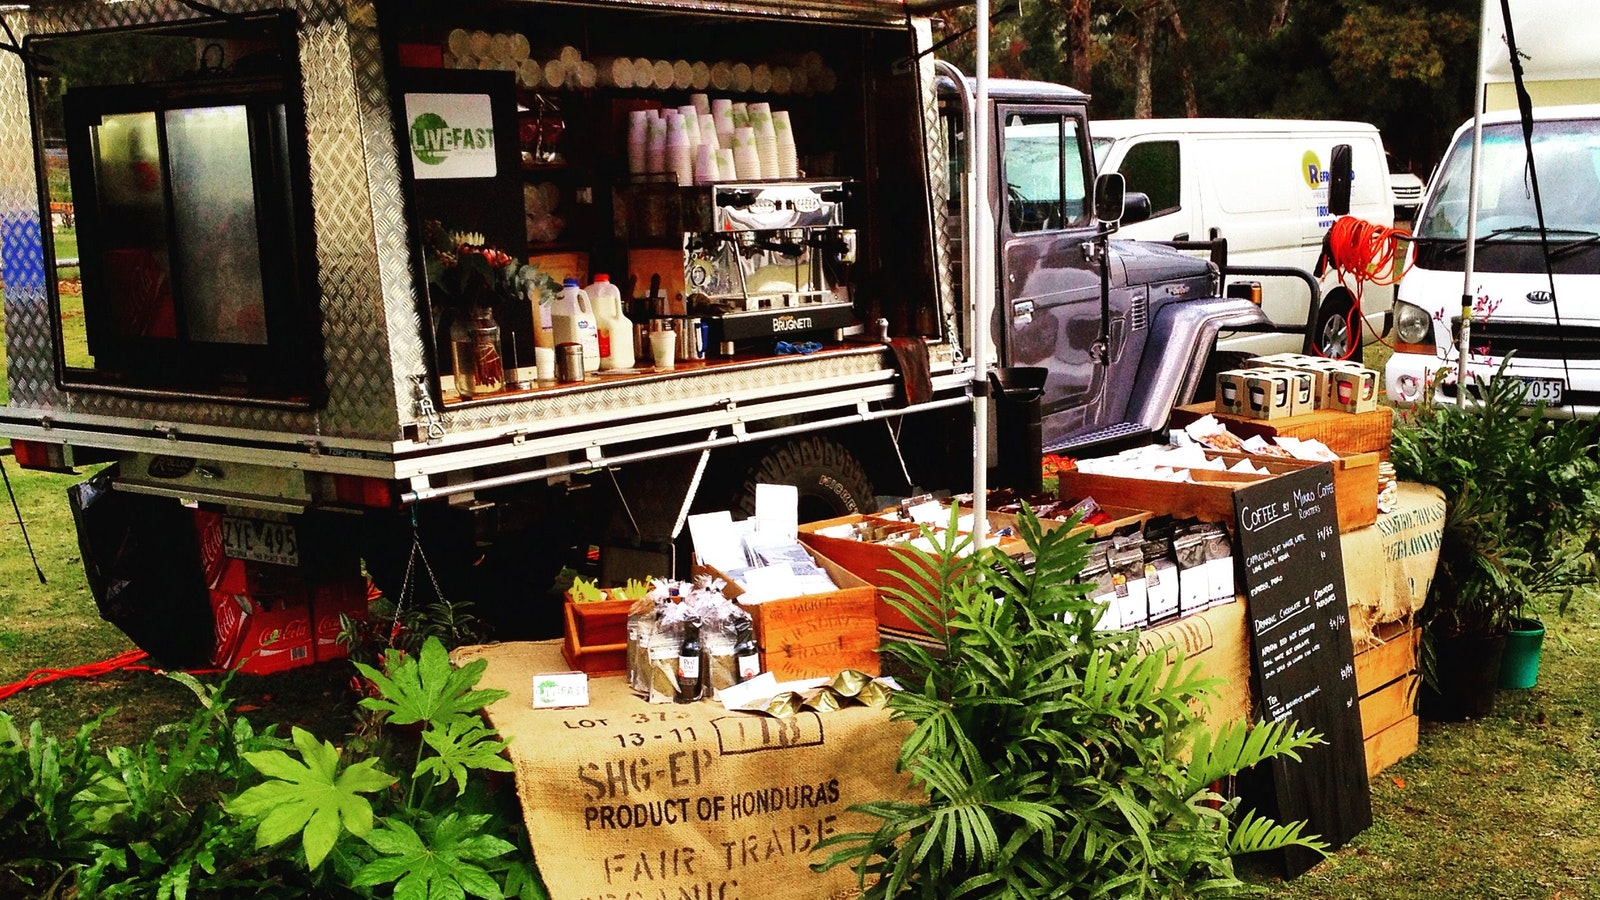 You might even spot Livefast's mobile coffee ute cruising around local Grampians events